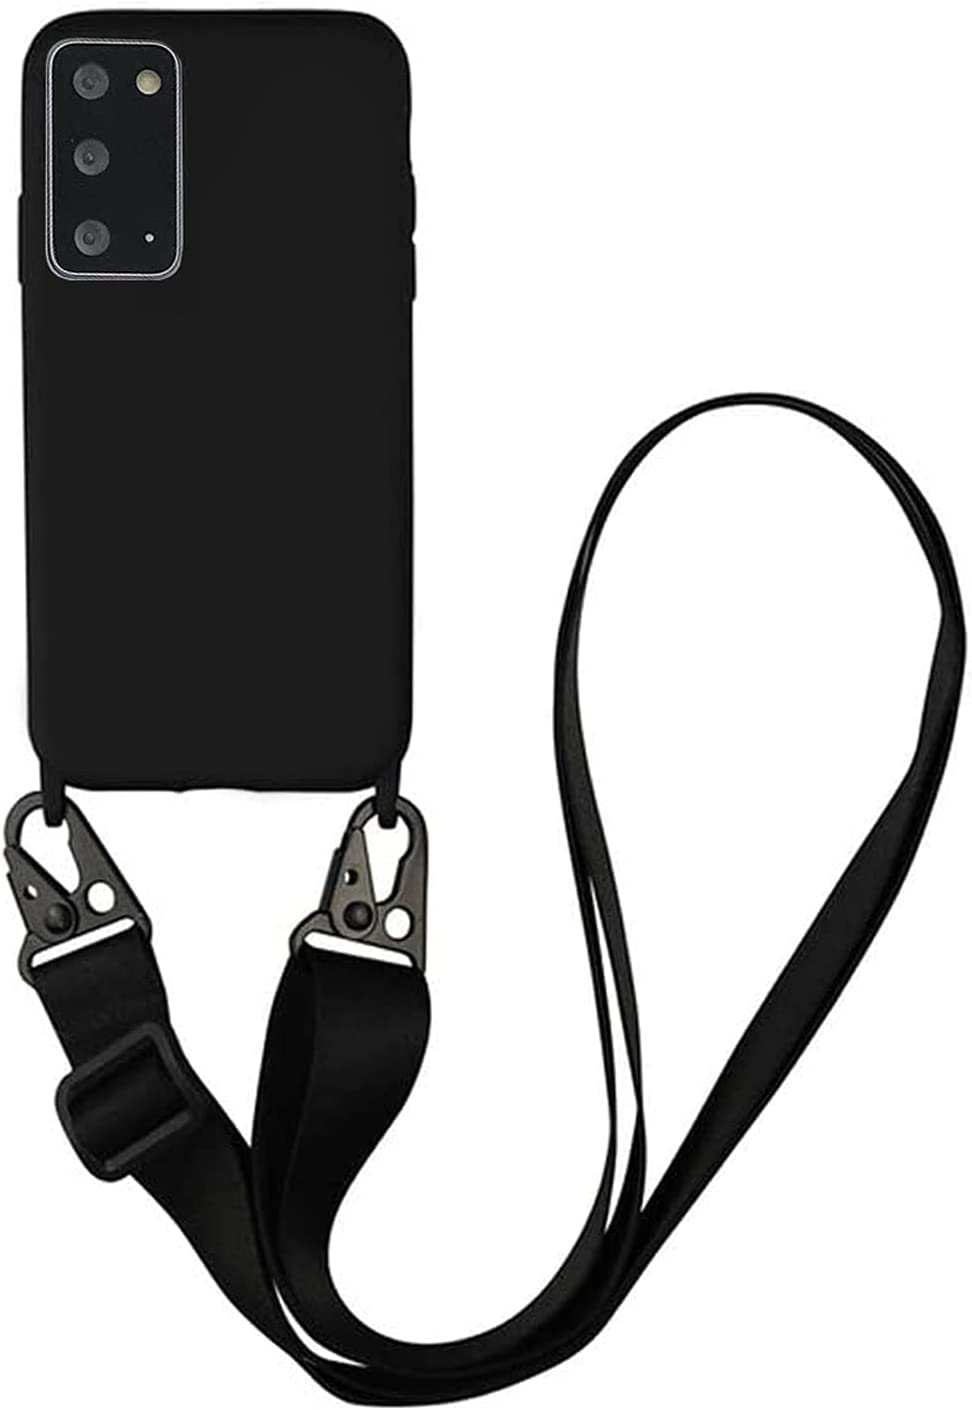 TY-Box Portable Necklace Silicone Phone Cover Compatible with Samsung Galaxy S21, Soft Cell Phone Protective Cover+Adjust Crossbody Lanyard Case for Samsung Galaxy S21 2021 (Black, S21)